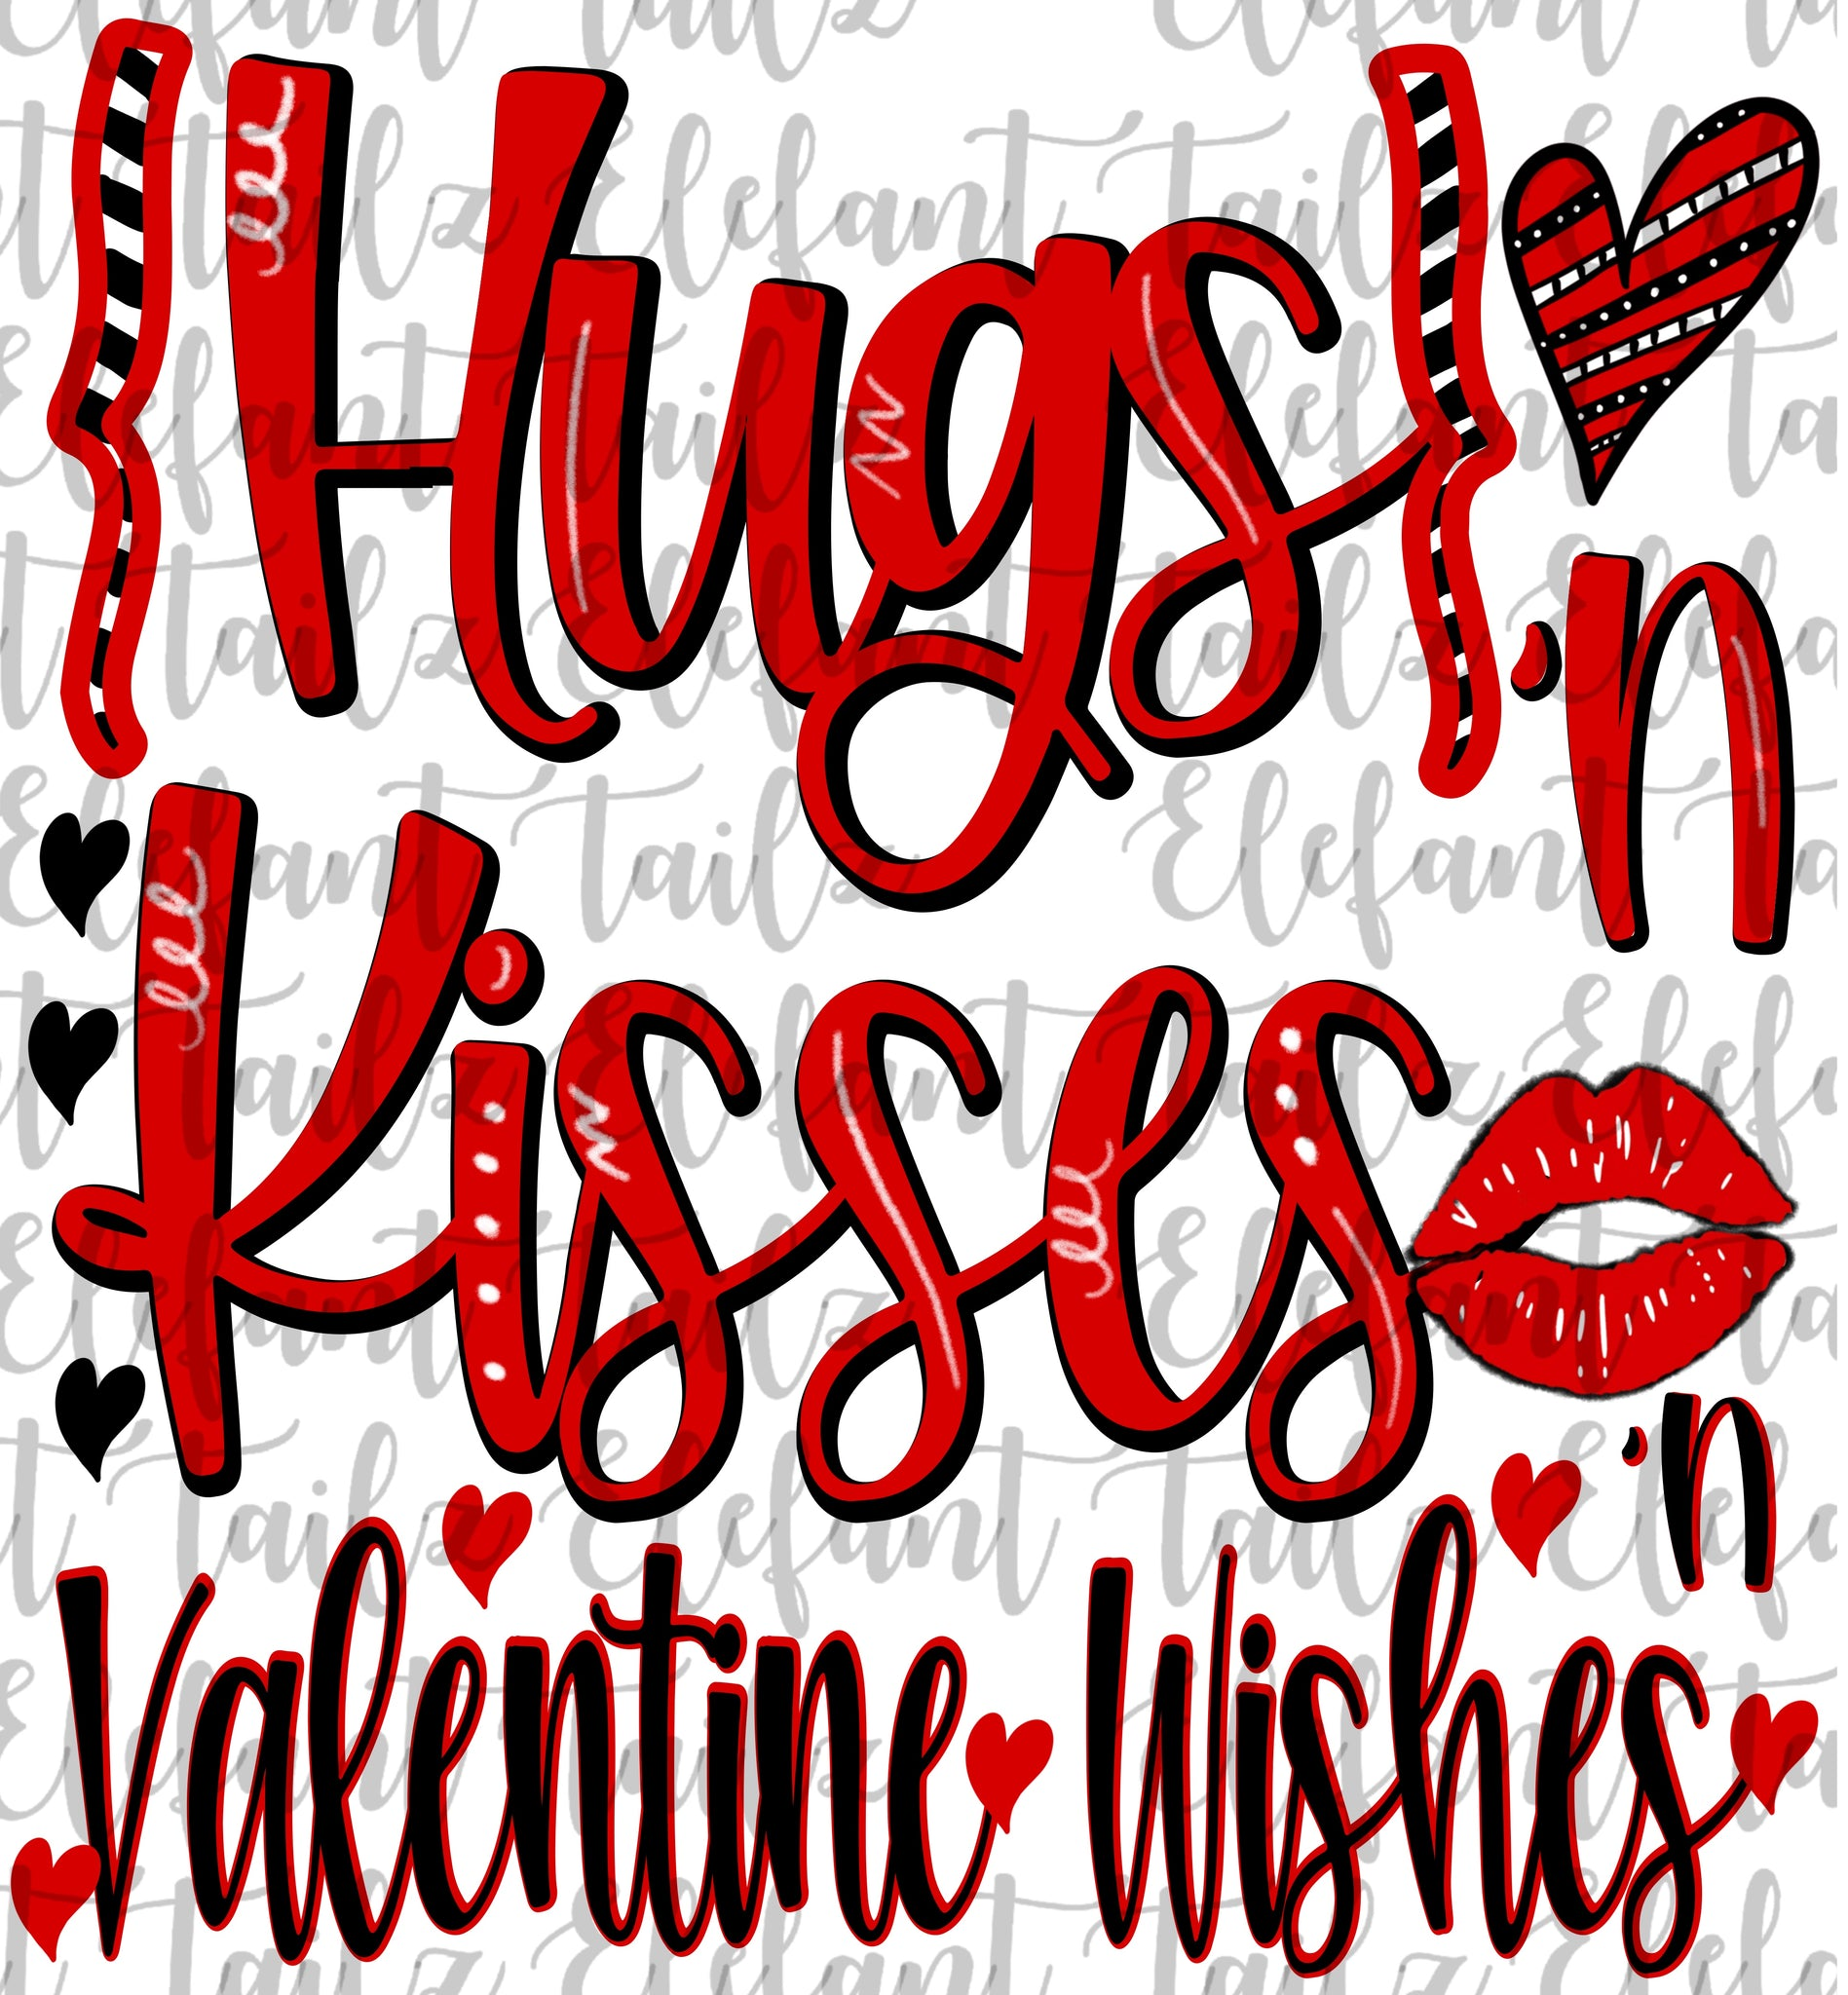 Hugs & Kisses & Valentine Wishes